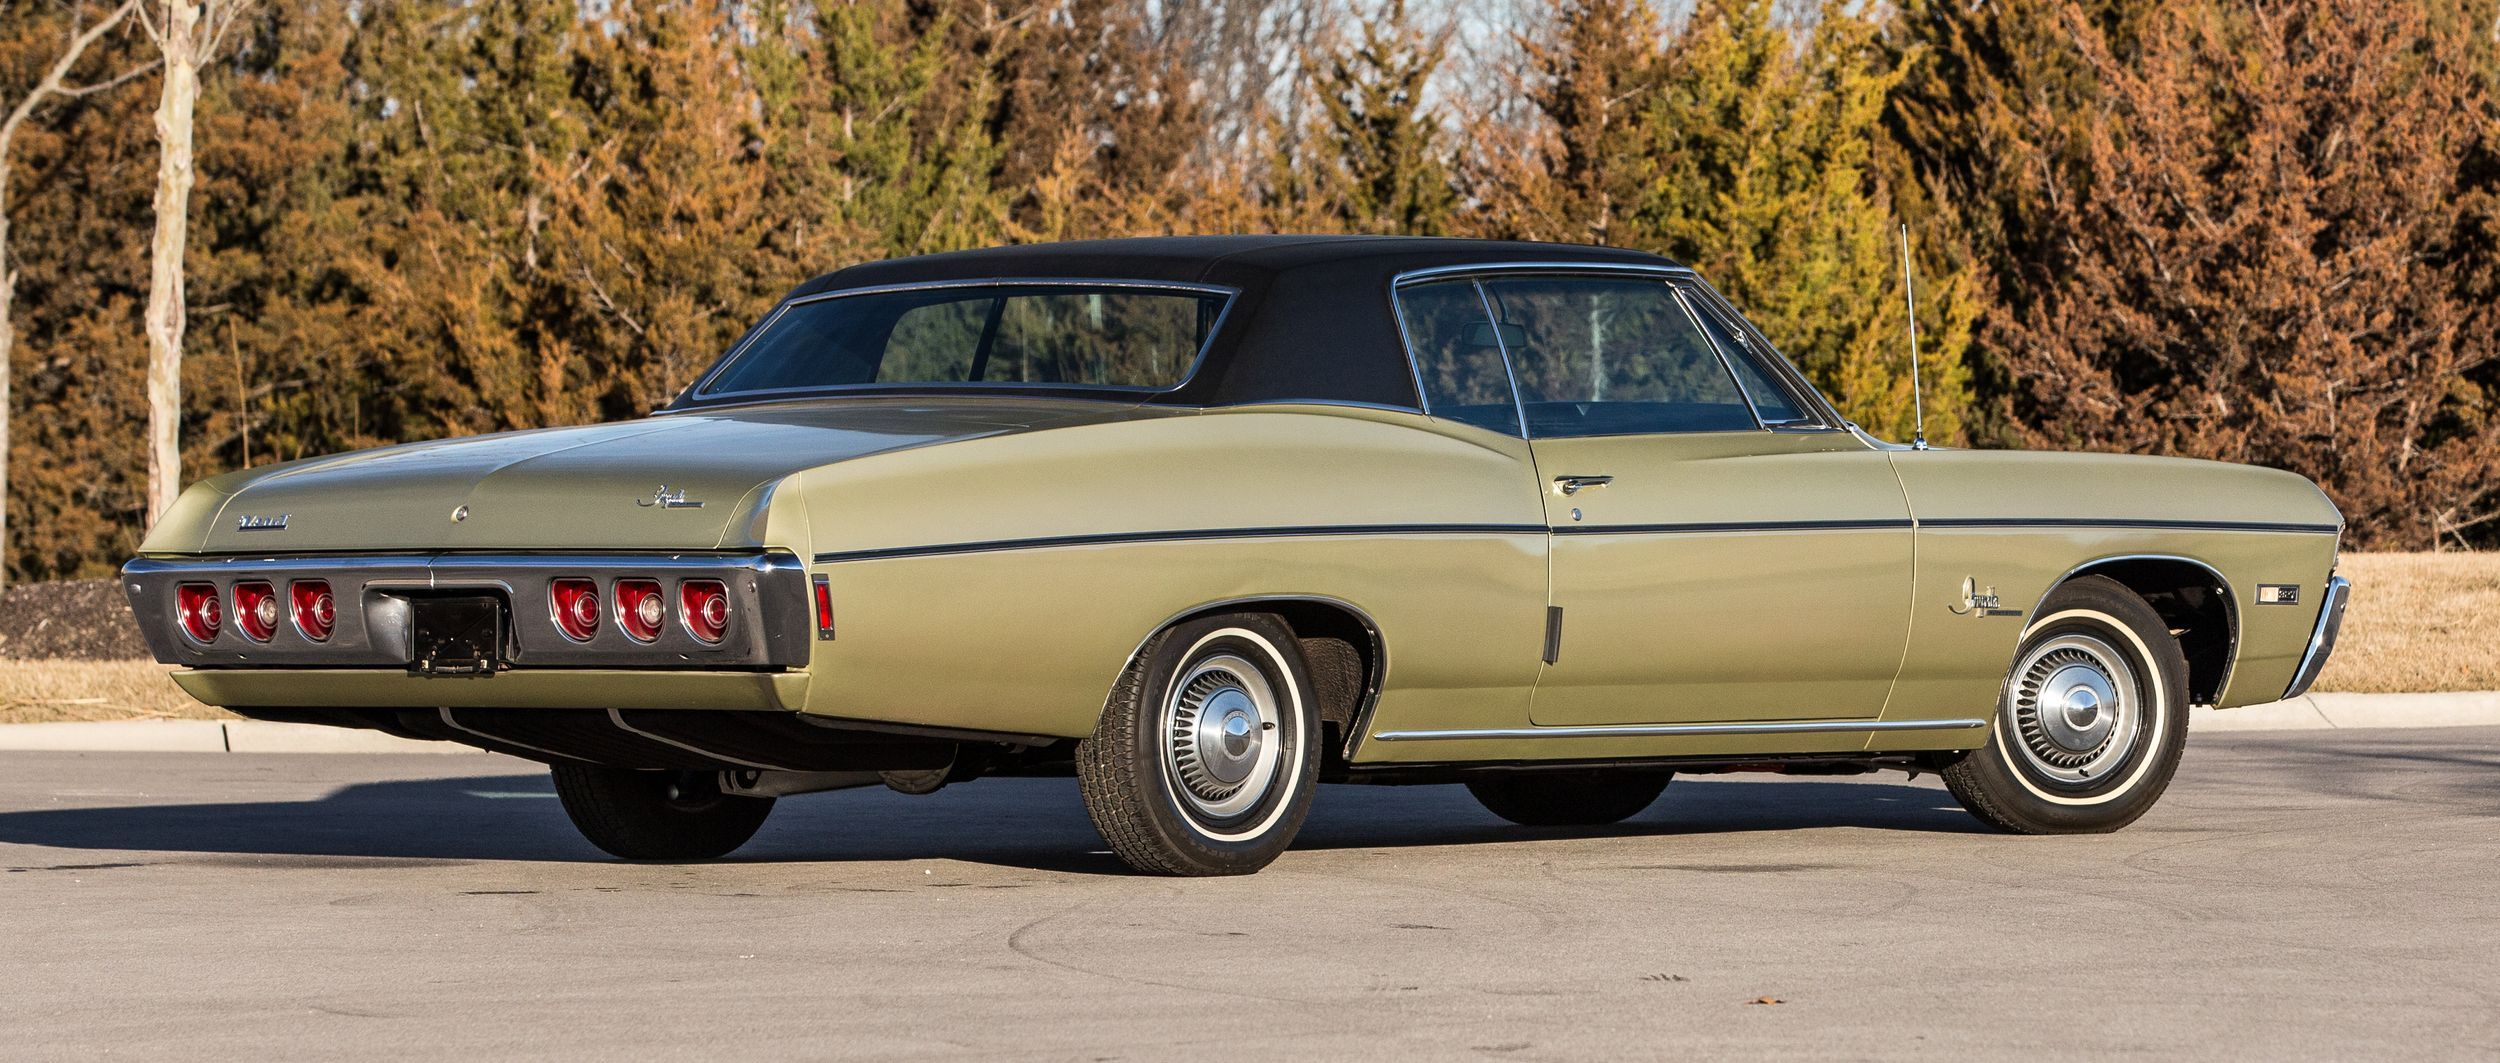 1968 Chevrolet Impala SS | See the U.S.A. in your Chevrolet ...